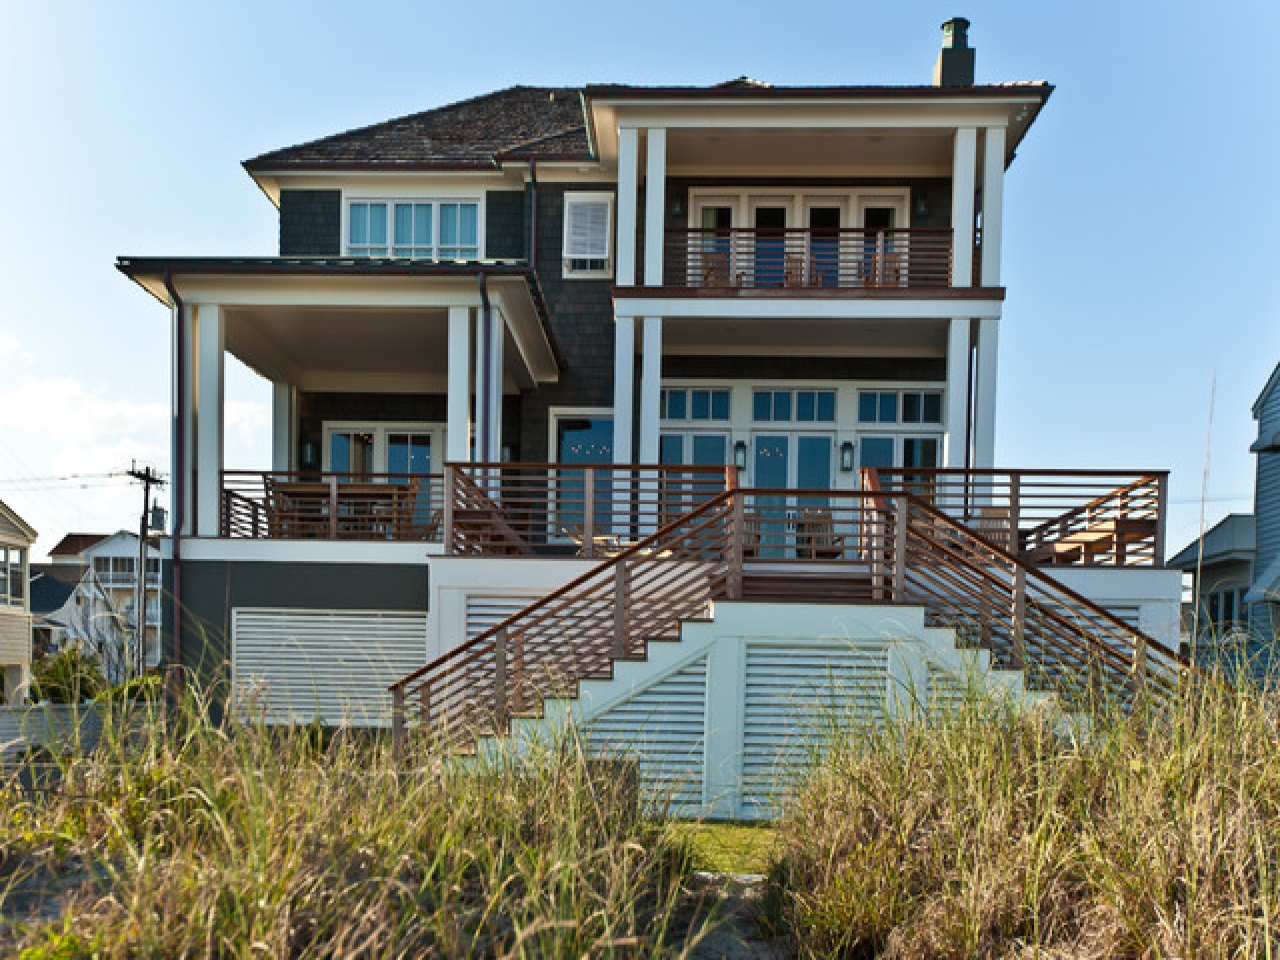 Beach house exterior color schemes beach house exterior for Beach style house exterior